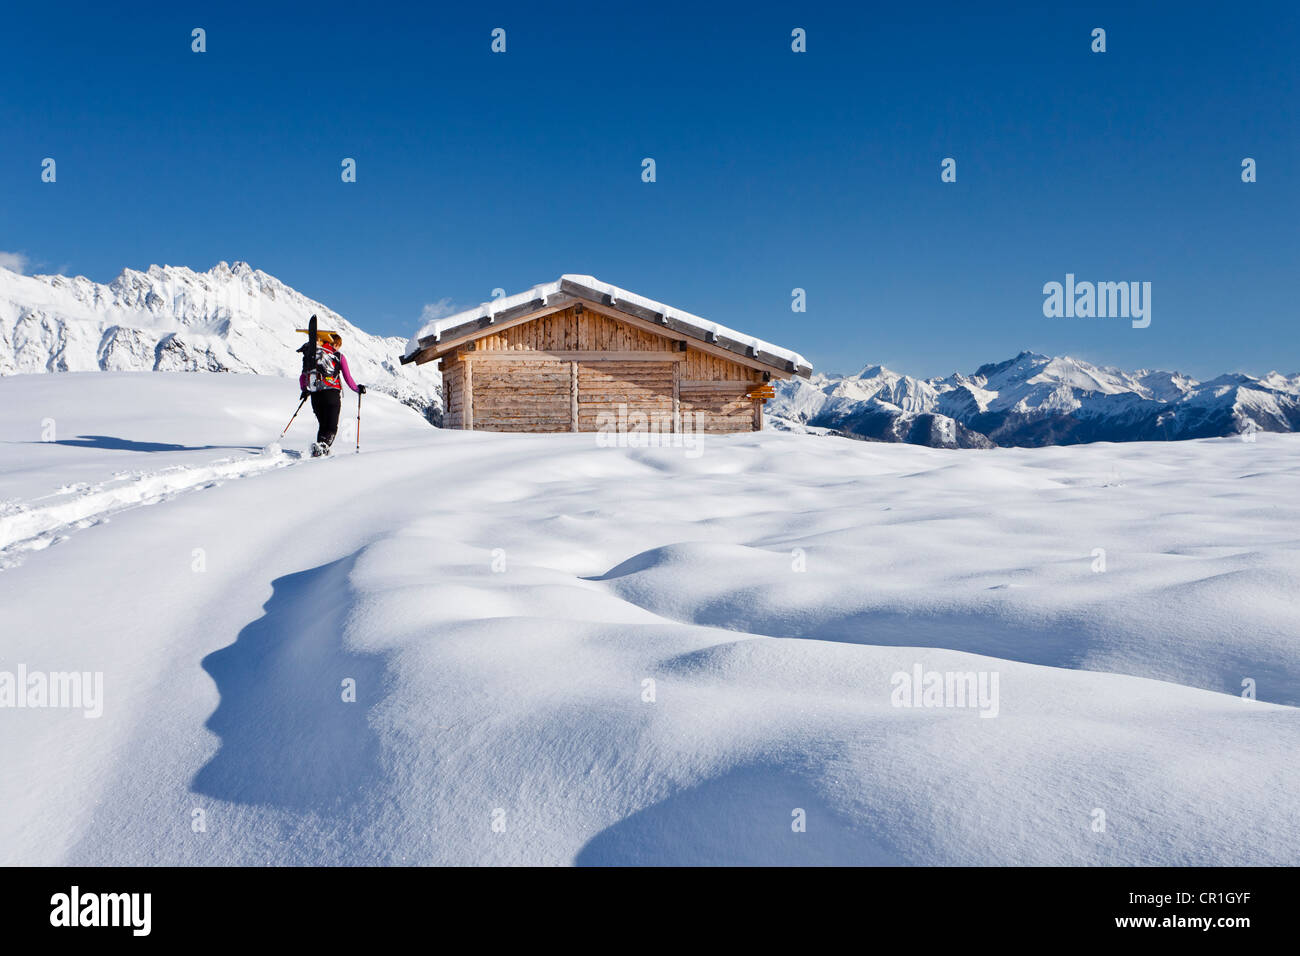 Snowshoer ascending to Jagelealm alpine pasture in Ridnauntal Valley above Entholz, looking towards Rosskopf Mountain - Stock Image